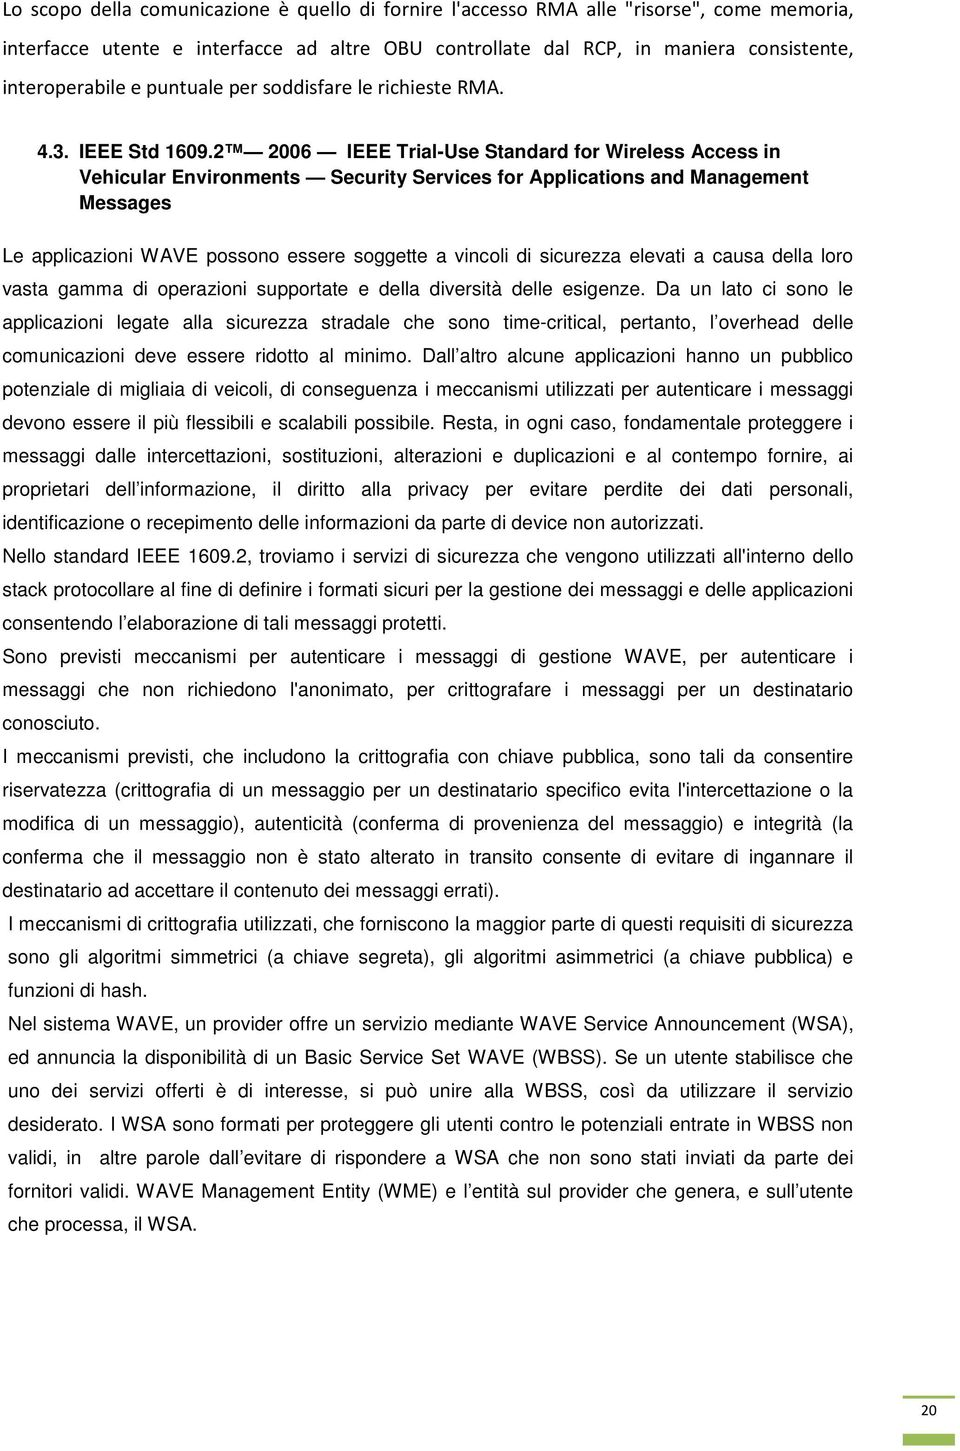 2 2006 IEEE Trial-Use Standard for Wireless Access in Vehicular Environments Security Services for Applications and Management Messages Le applicazioni WAVE possono essere soggette a vincoli di